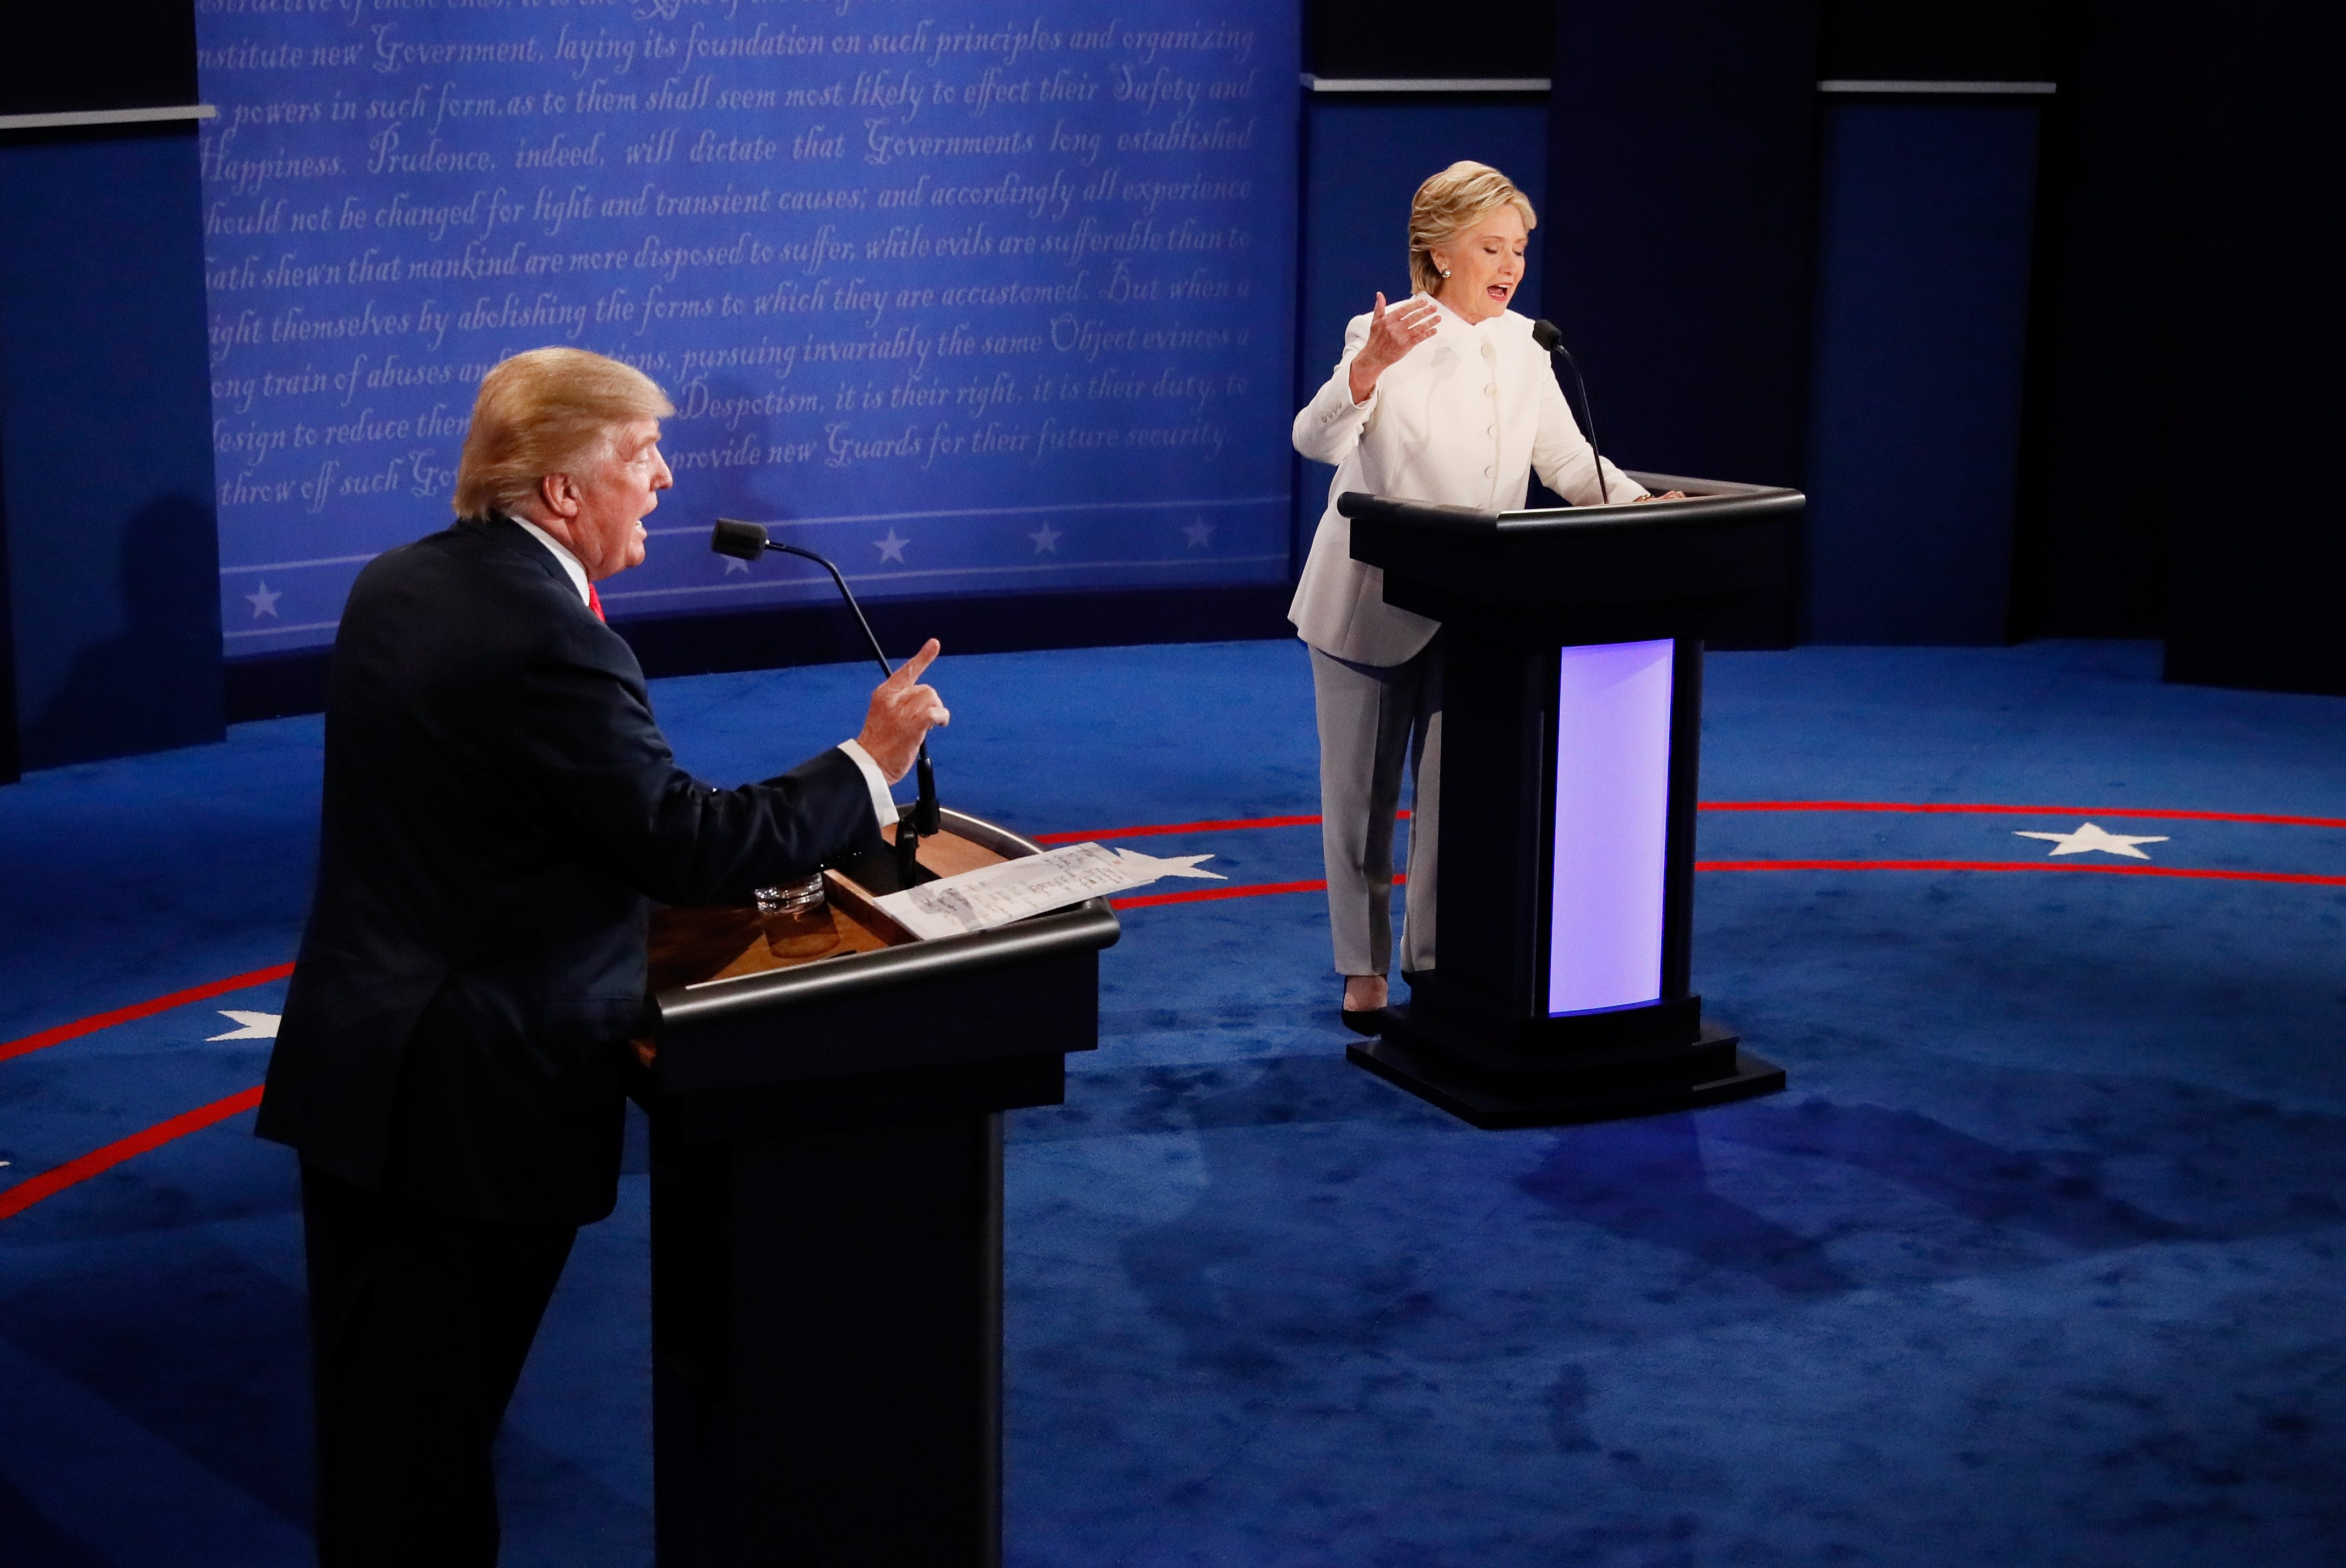 LAS VEGAS, NV - OCTOBER 19:  Democratic presidential nominee former Secretary of State Hillary Clinton (R) debates with Republican presidential nominee Donald Trump during the third U.S. presidential debate at the Thomas & Mack Center on October 19, 2016 in Las Vegas, Nevada. Tonight is the final debate ahead of Election Day on November 8.  (Photo by Pool/Getty Images)